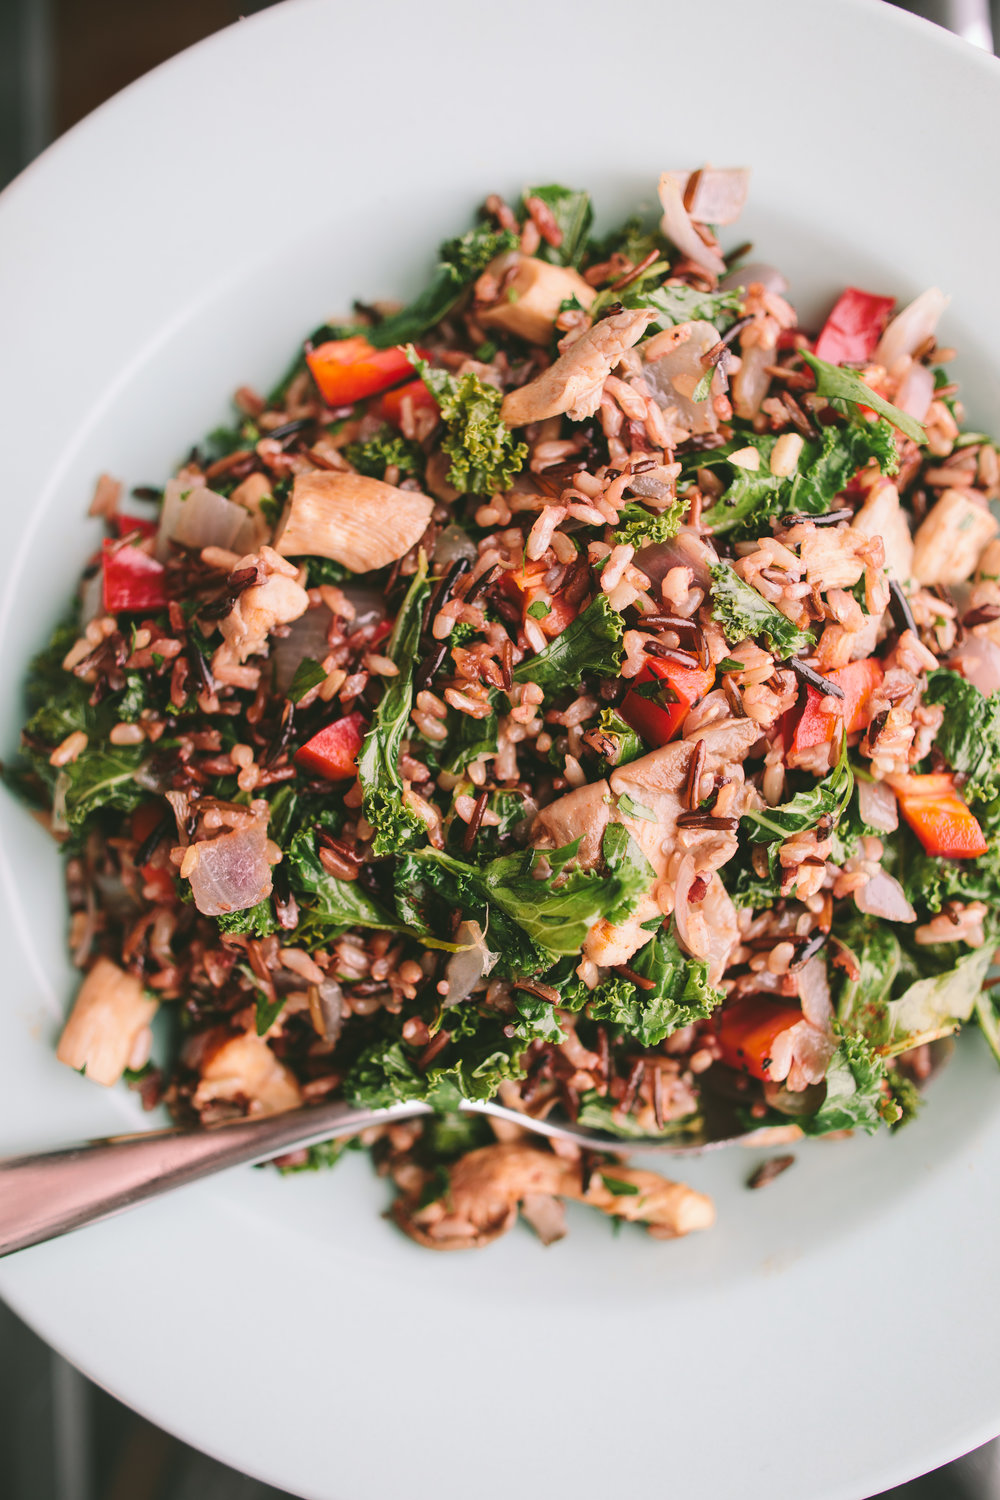 Wild Rice with Sautéed Kale and Oyster Mushrooms from www.athoughtforfood.net